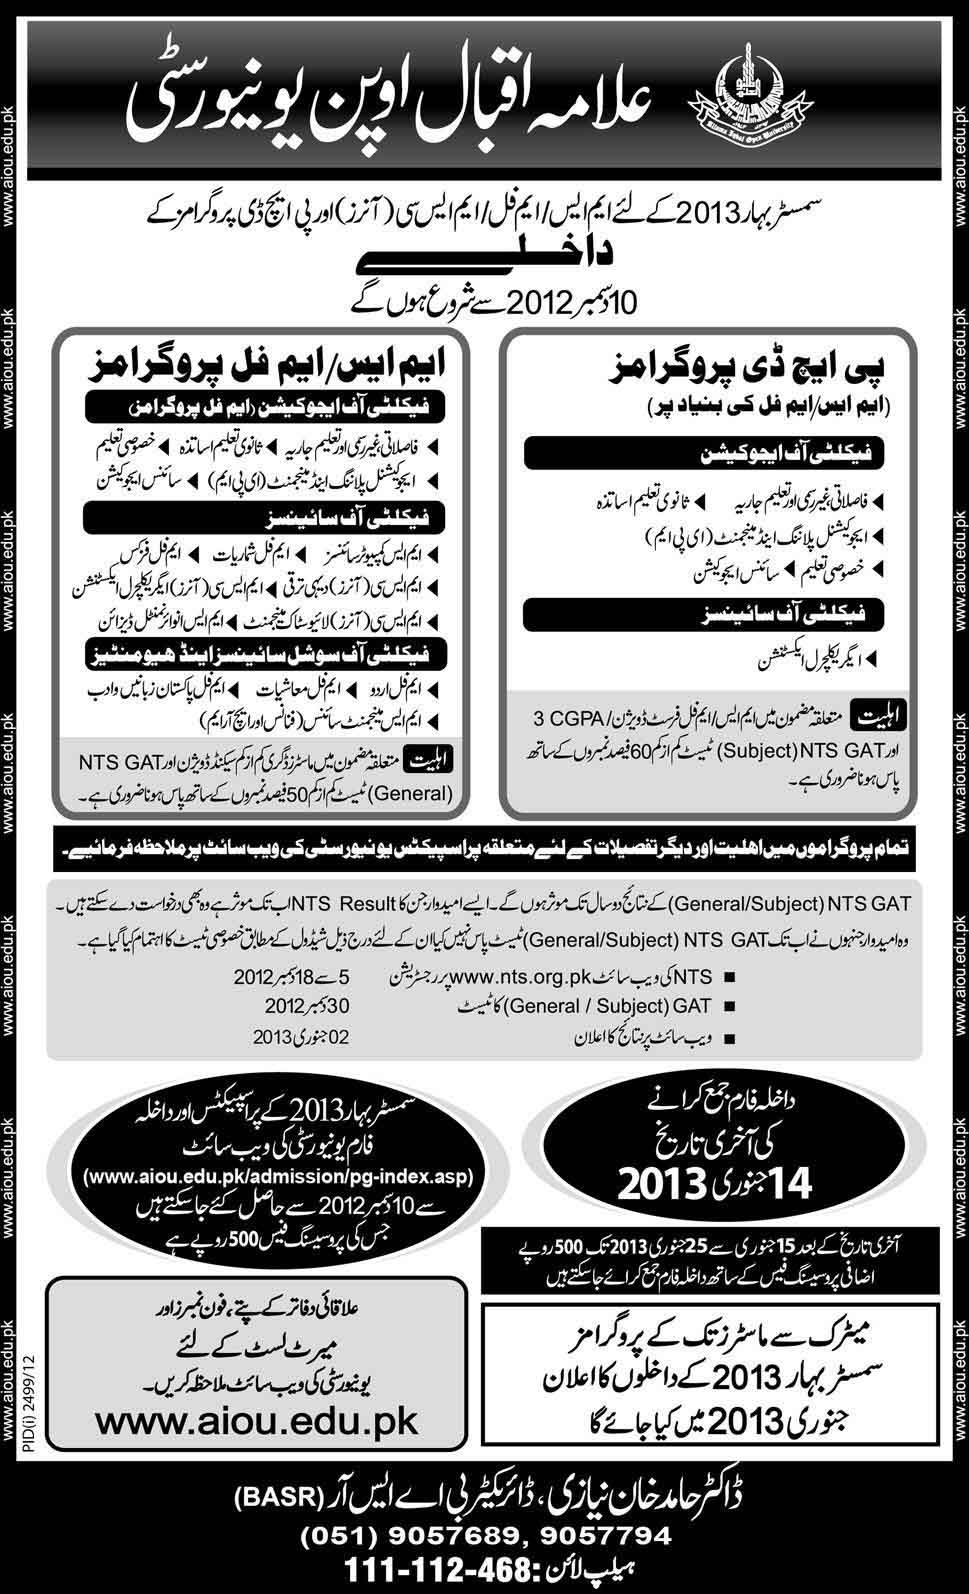 Allama Iqbal Open University Admissions 2013